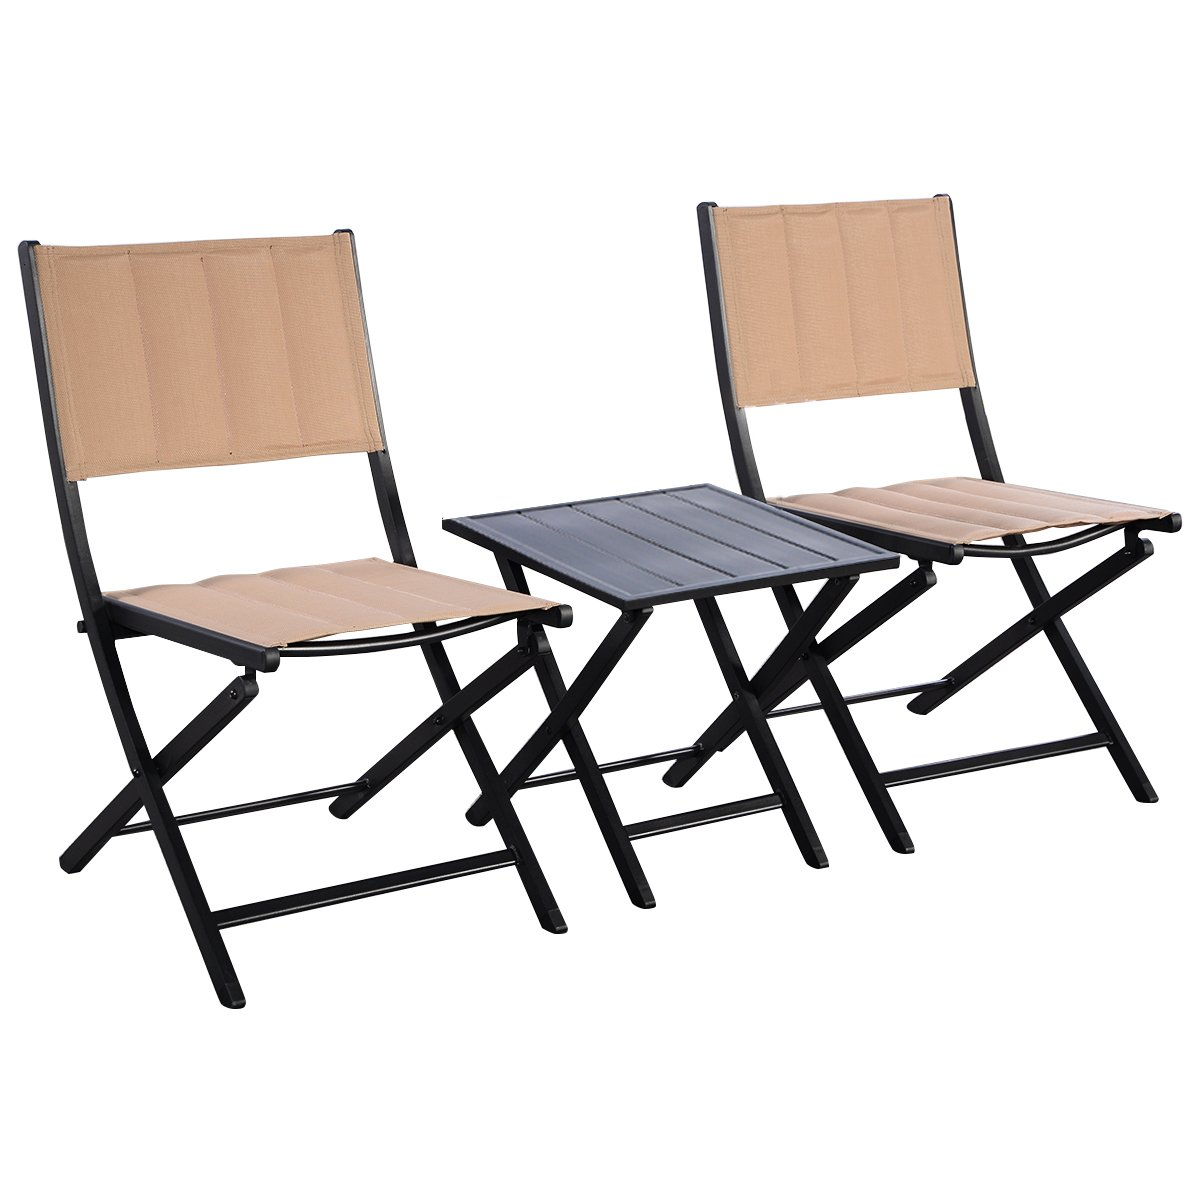 Giantex 3PCS Steel Folding Square Table Chairs Set Bistro Garden Furniture